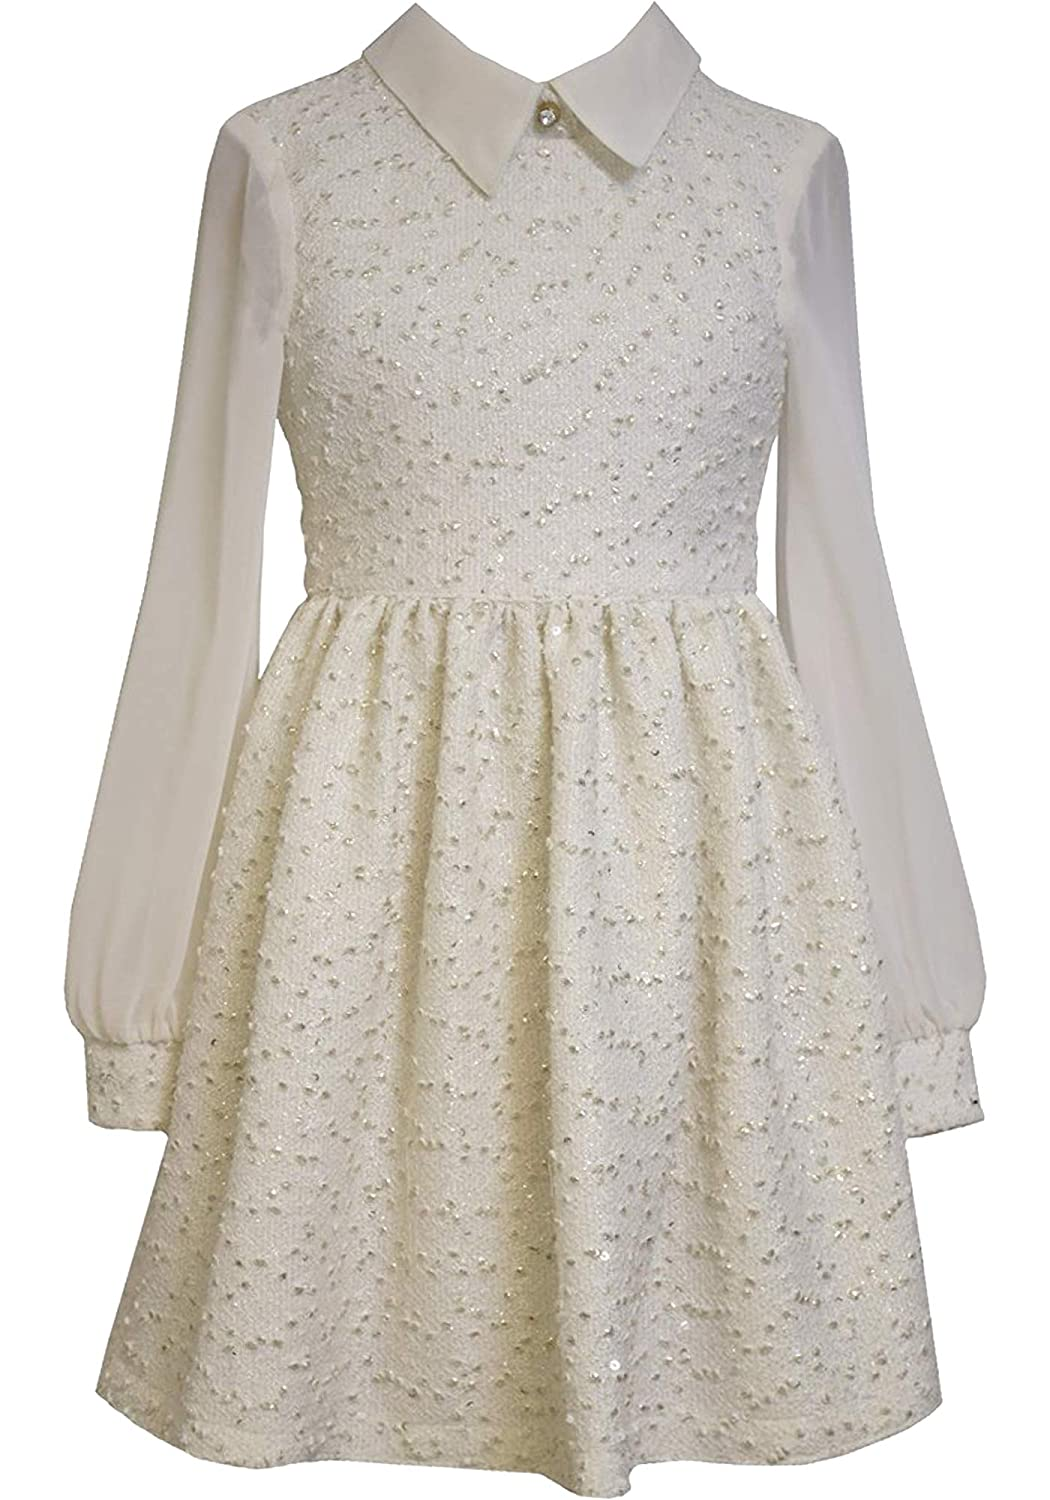 1940s Children's Clothing: Girls, Boys, Baby, Toddler Little Girls 2T-6X Ivory/Gold Foil Knit Boucle Chiffon Sleeves Dress $42.99 AT vintagedancer.com